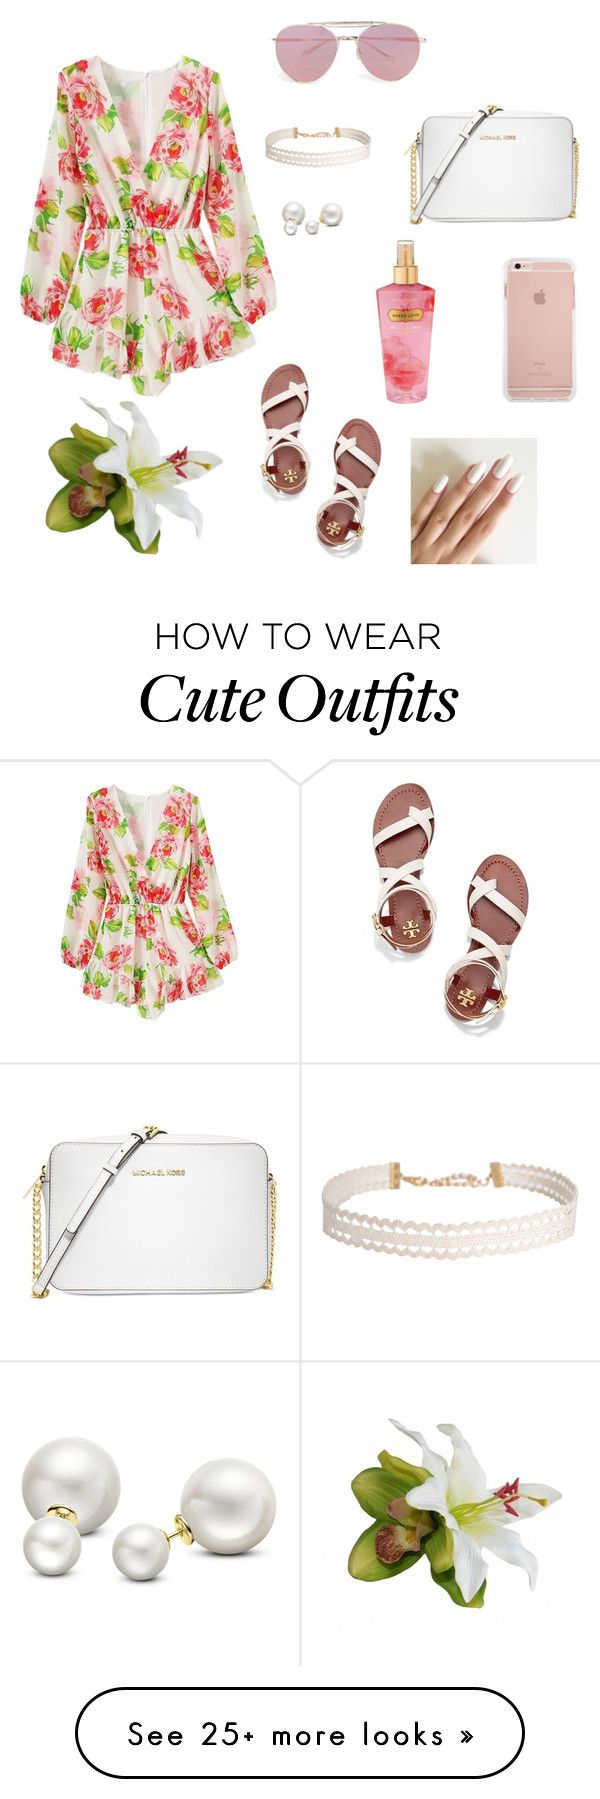 """""""Cute summer romper outfit 3"""" by cheleniak on Polyvore featuring Boohoo, Tory Burch, Michael Kors, Humble Chic, Allurez and Victoria's Secret"""